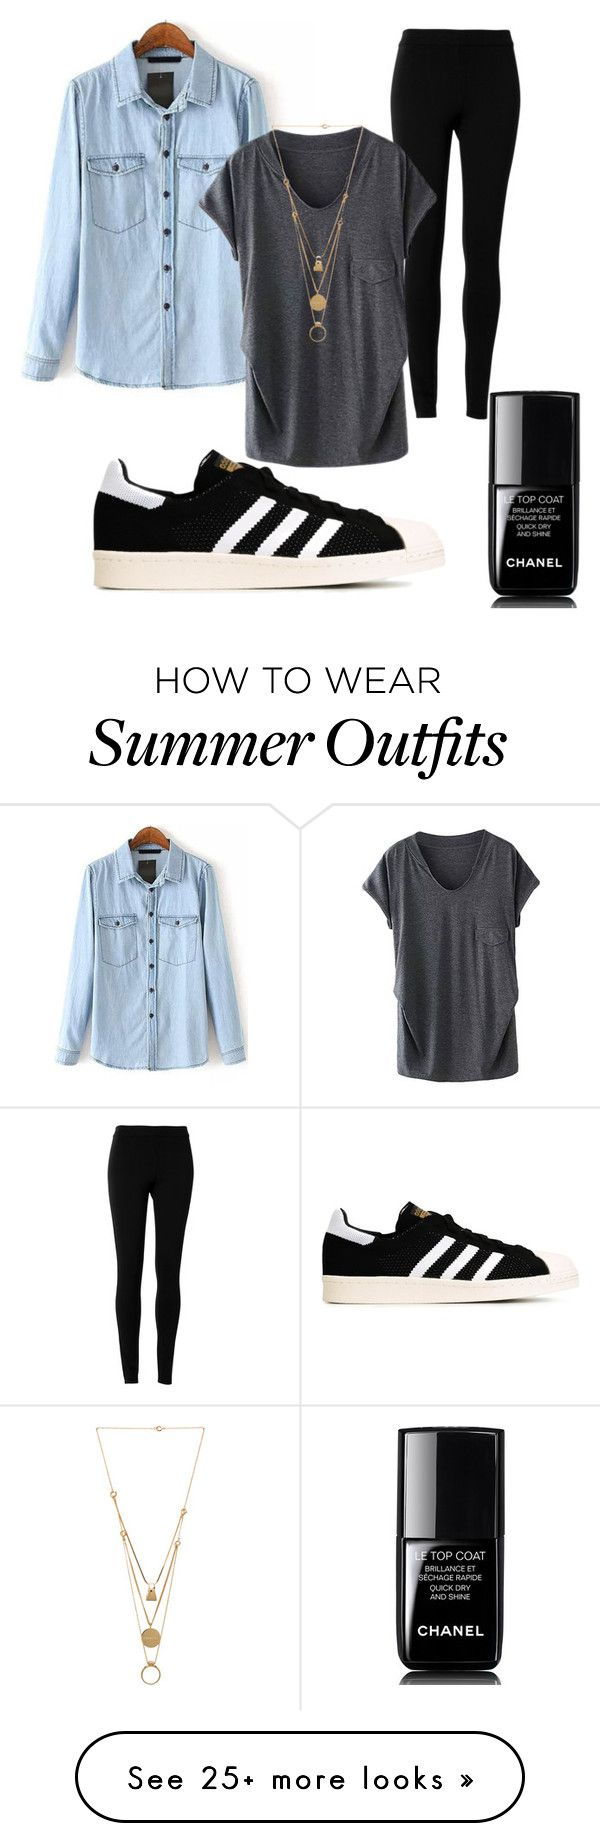 """College Outfit"" by verenastroppa on Polyvore featuring moda, Chanel, Max Studio, adidas Originals y Maison Margiela"